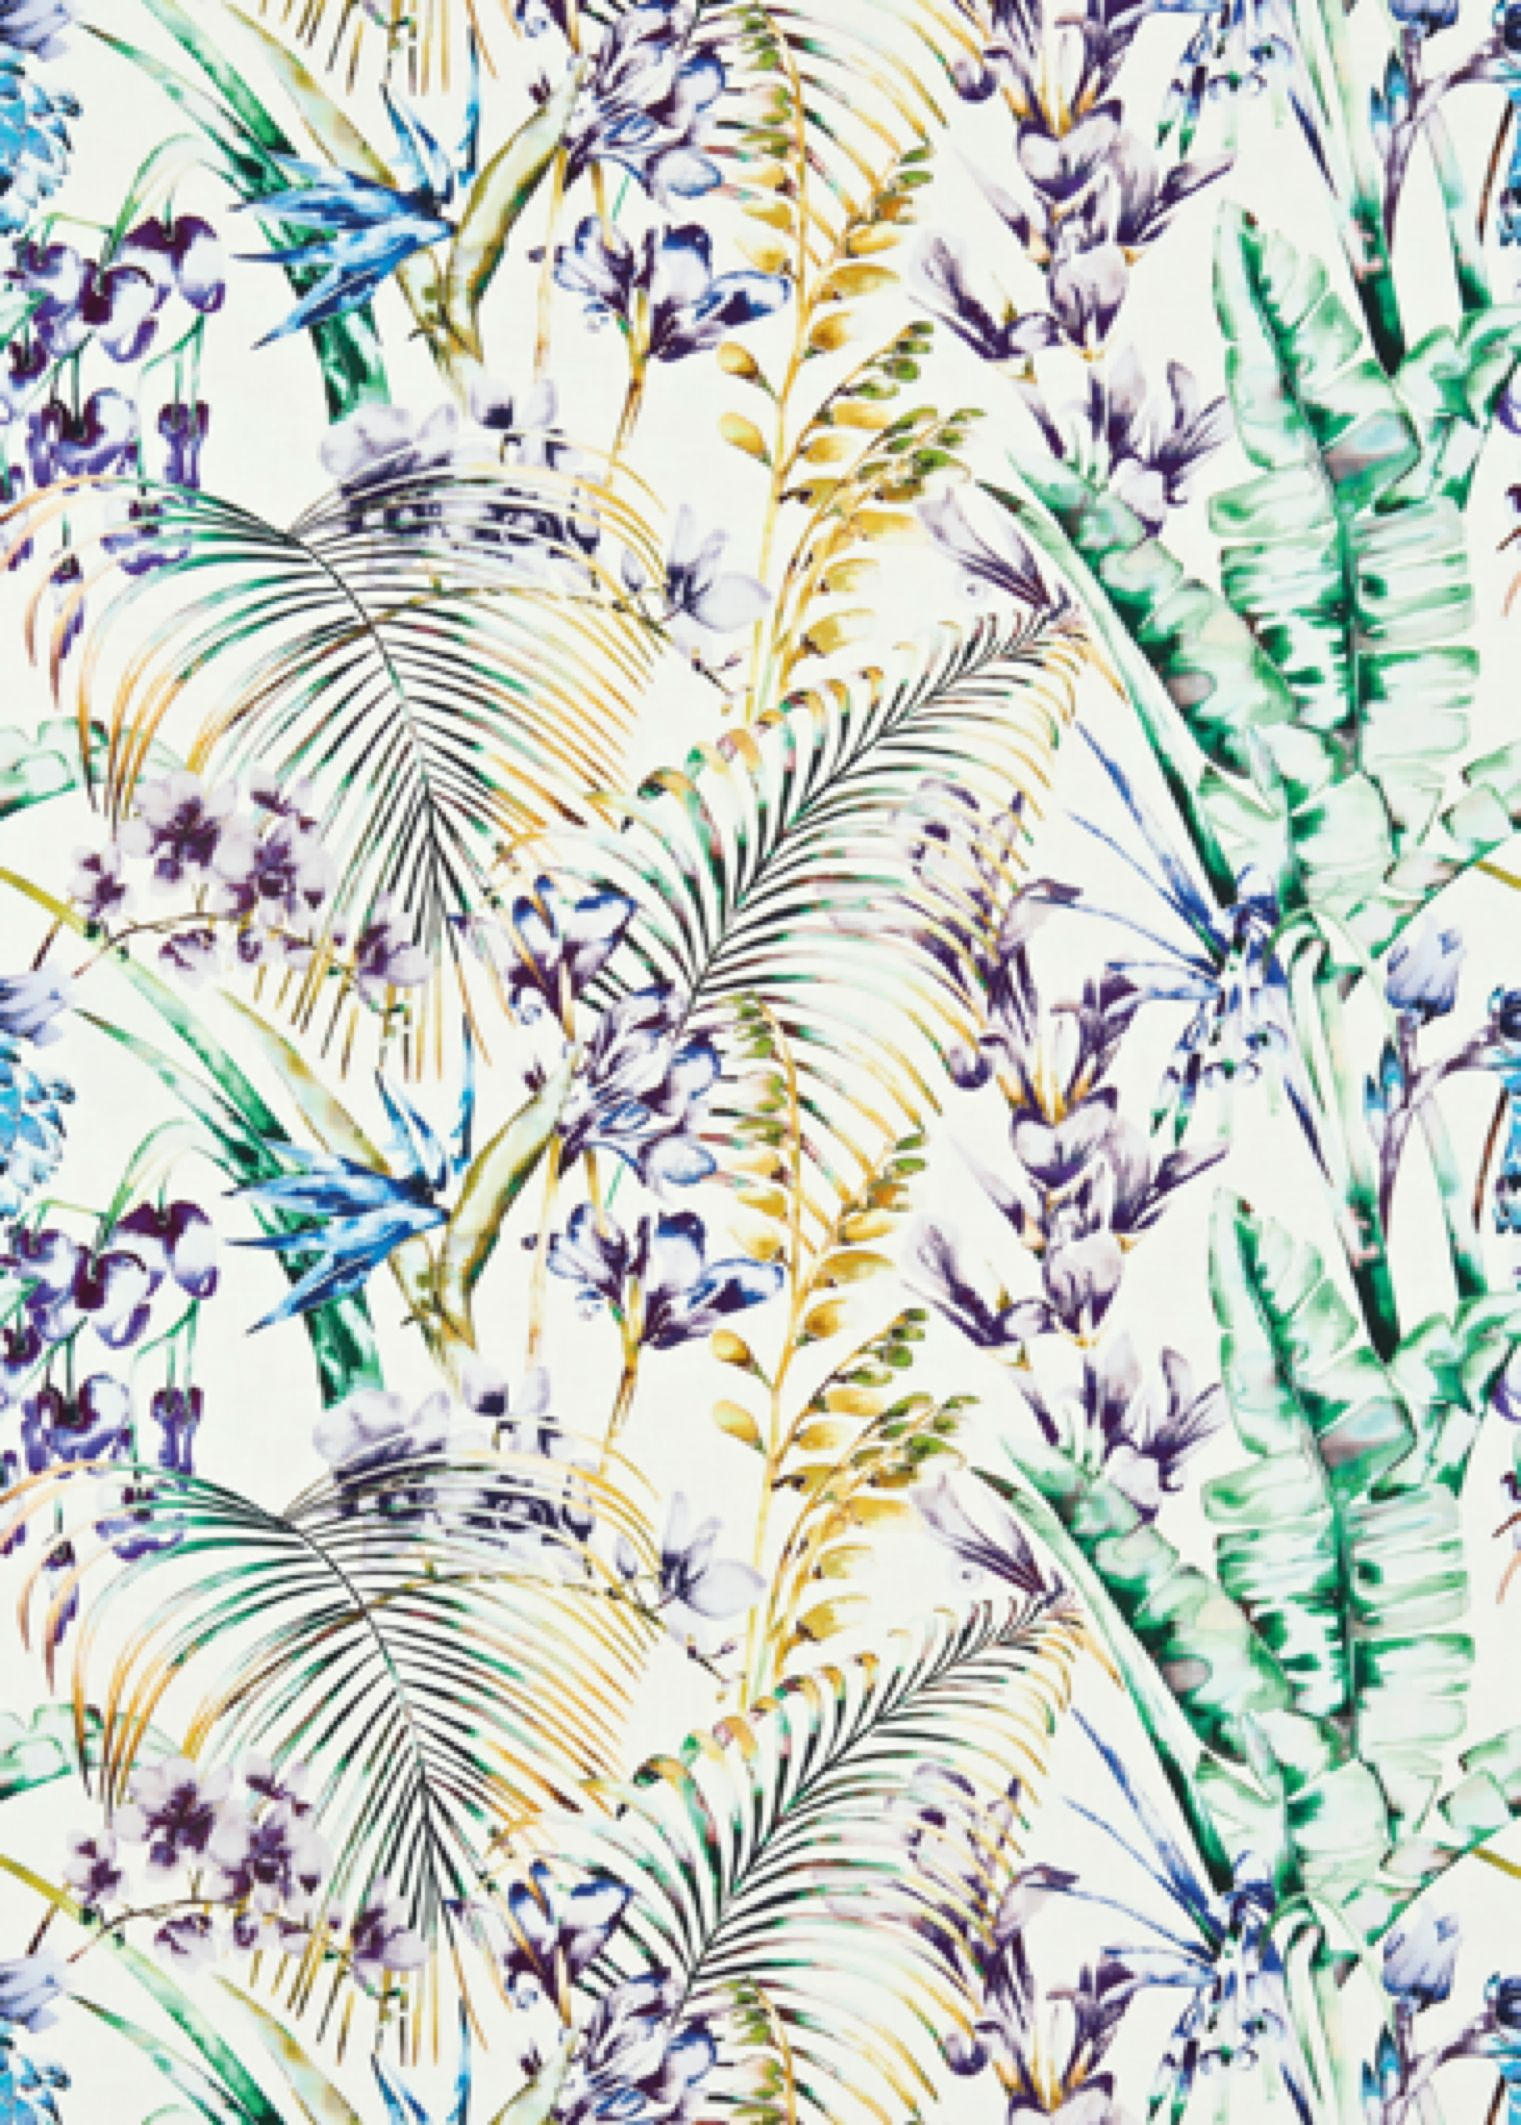 Products harlequin designer fabrics and wallpapers paradise - Paradise Harlequin Fabrics A Bright Jungle Floral Design With Orchids And Bird Of Paradise Flowers In A Loose Hand Painted Style